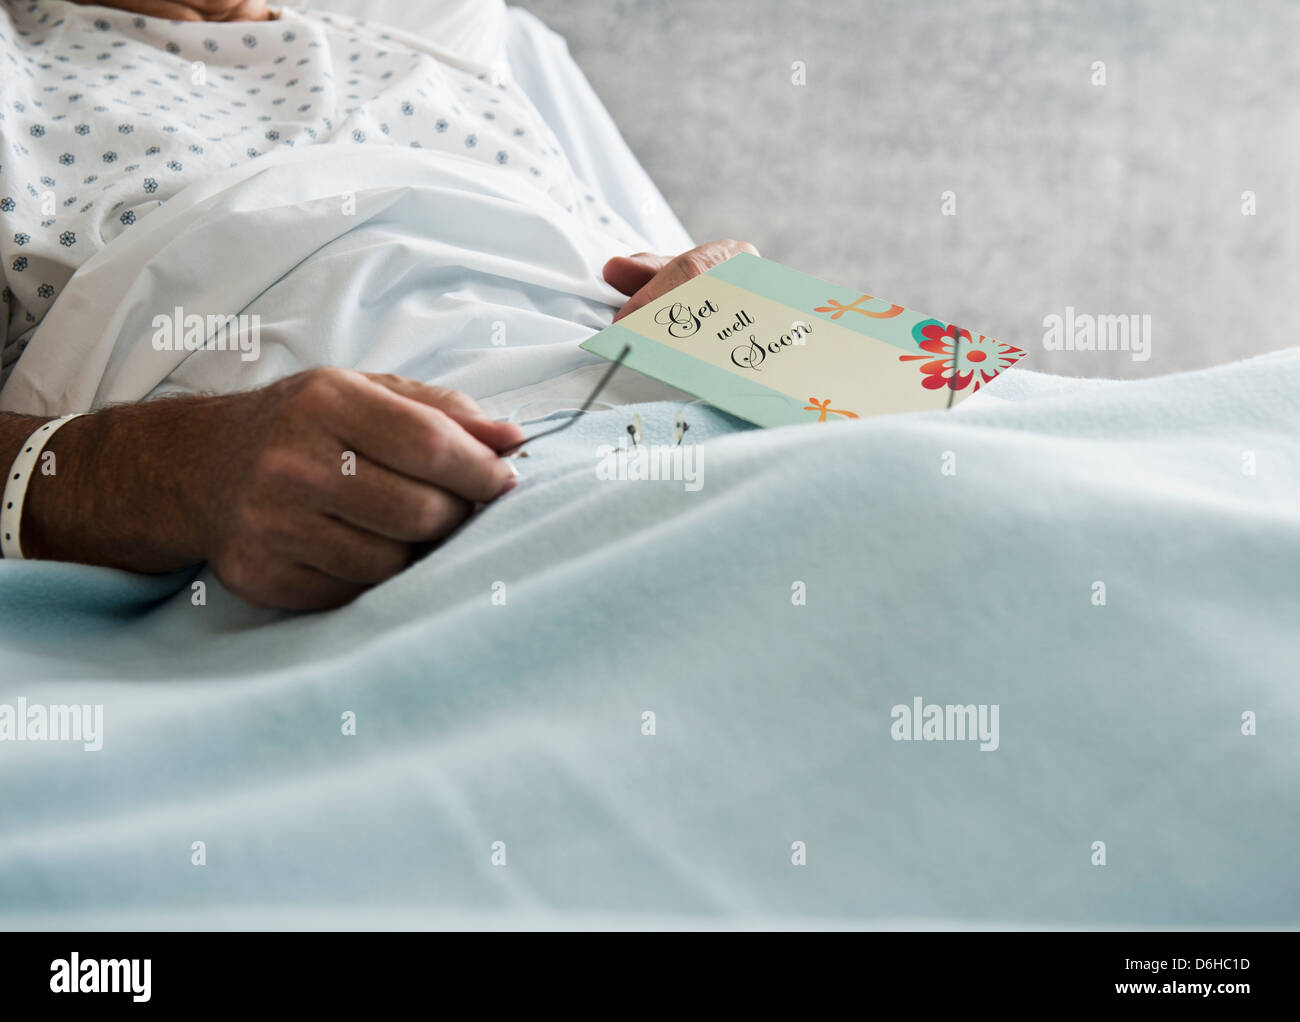 Hospital patient with get well soon card - Stock Image